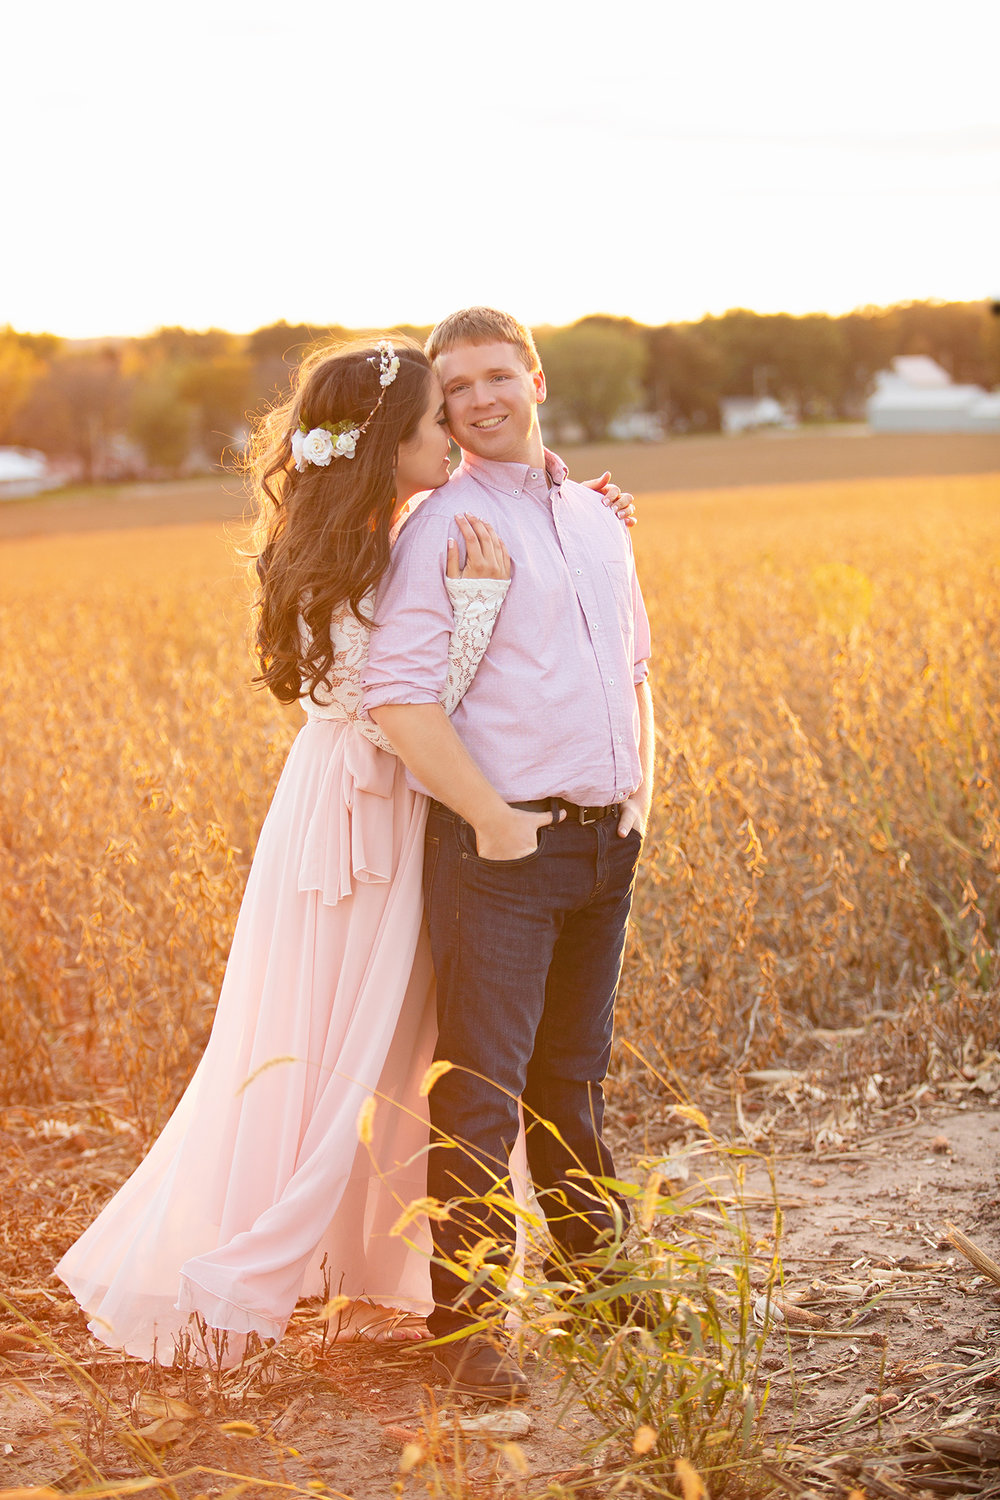 lehia erger photography engagement  wedding brandon iowa country.jpg